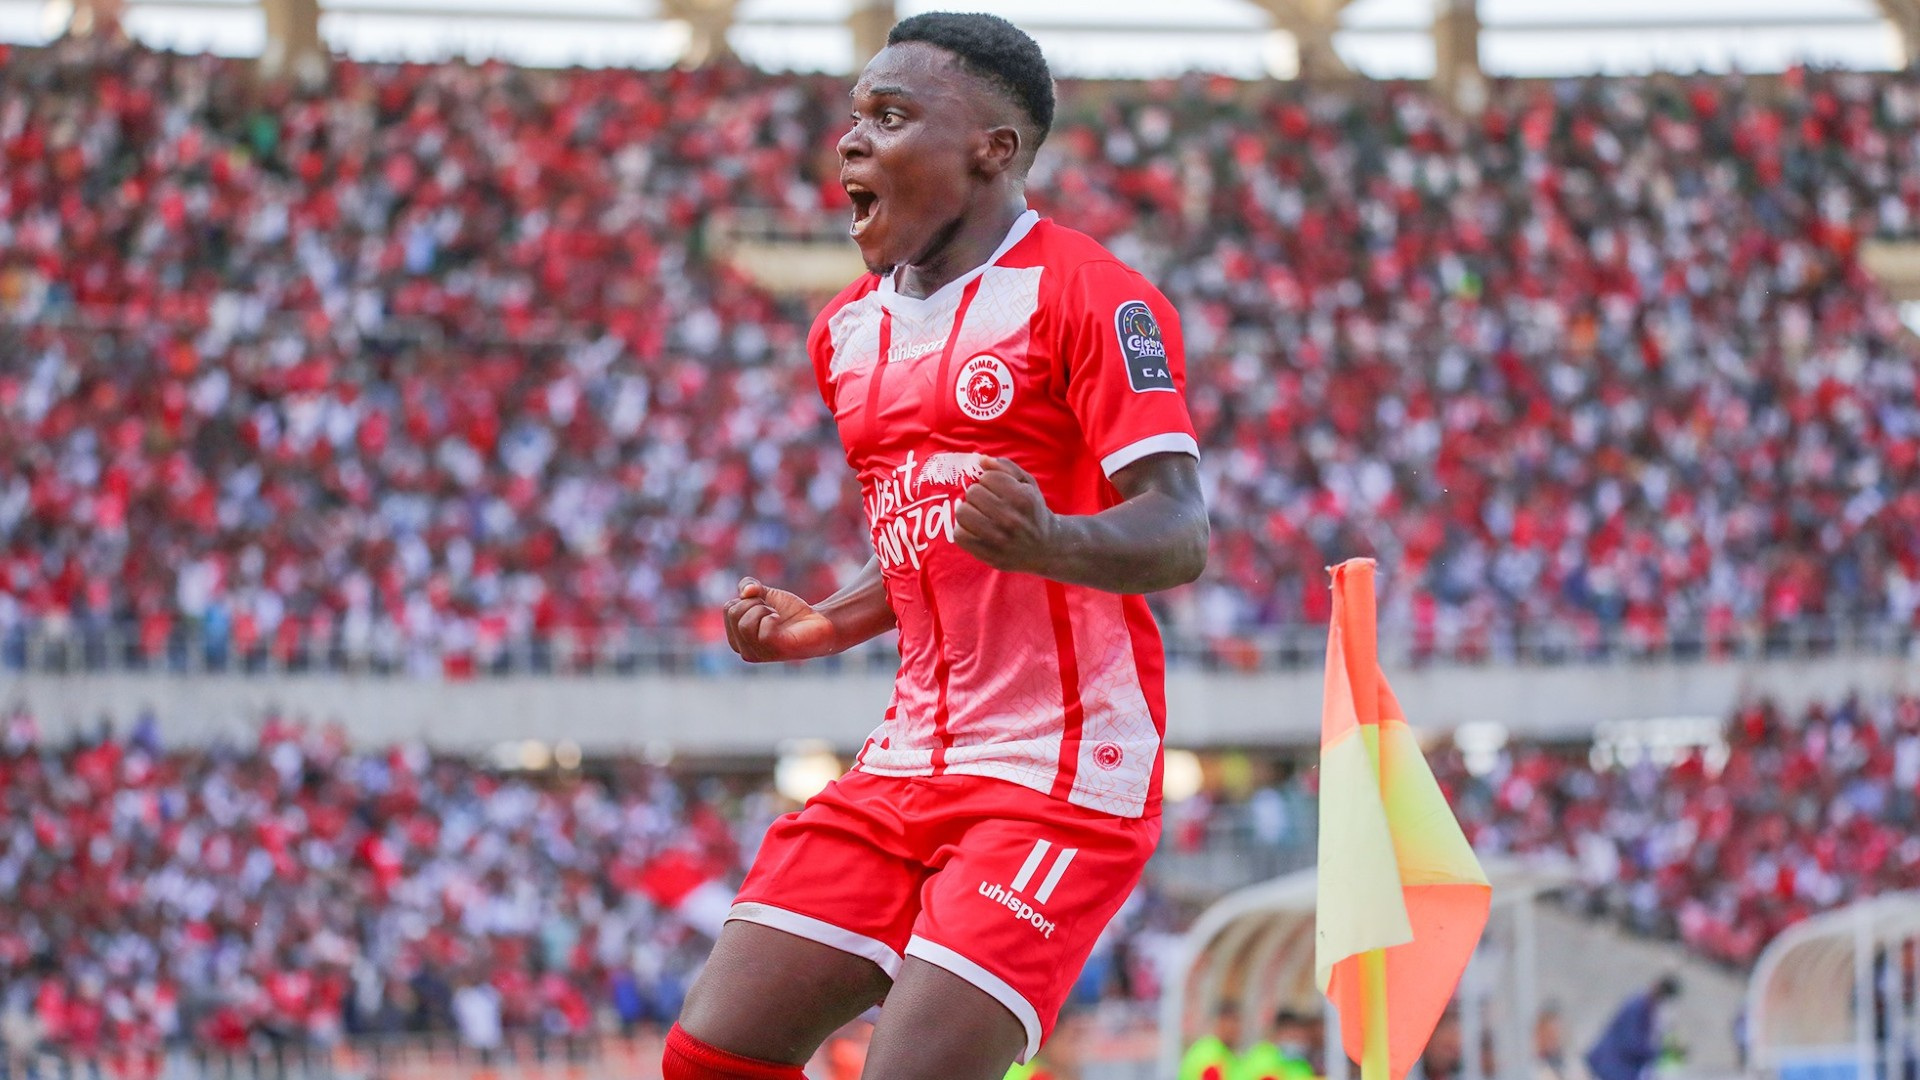 Miquissone: Simba SC confirm Al Ahly and Kaizer Chiefs contact for star player